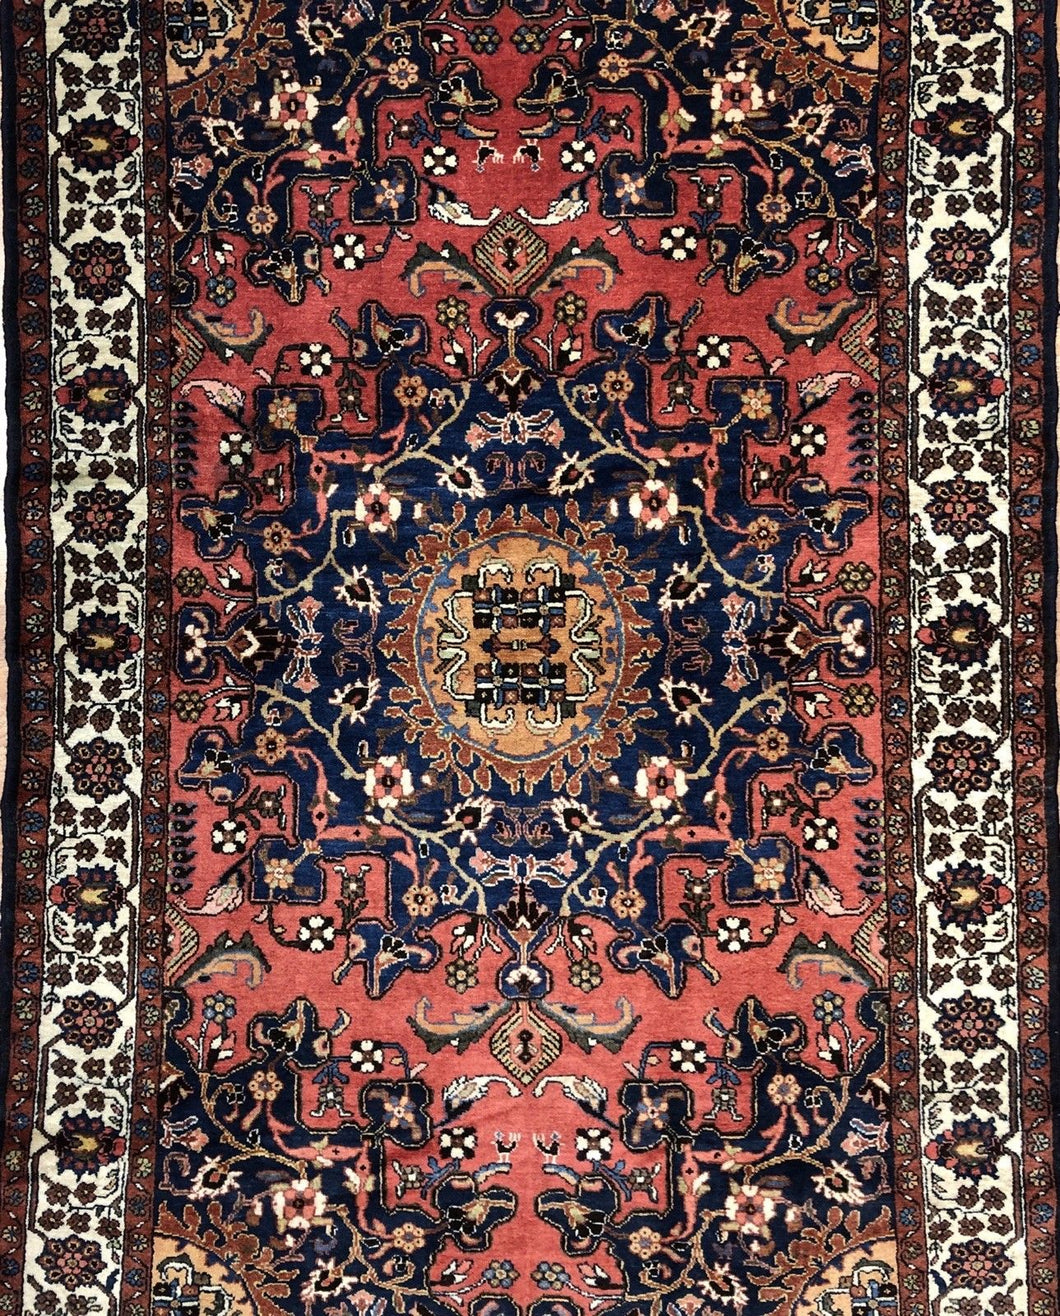 Tremendous Tafresh - 1920s Antique Persian Rug - Malayer Carpet - 4'2